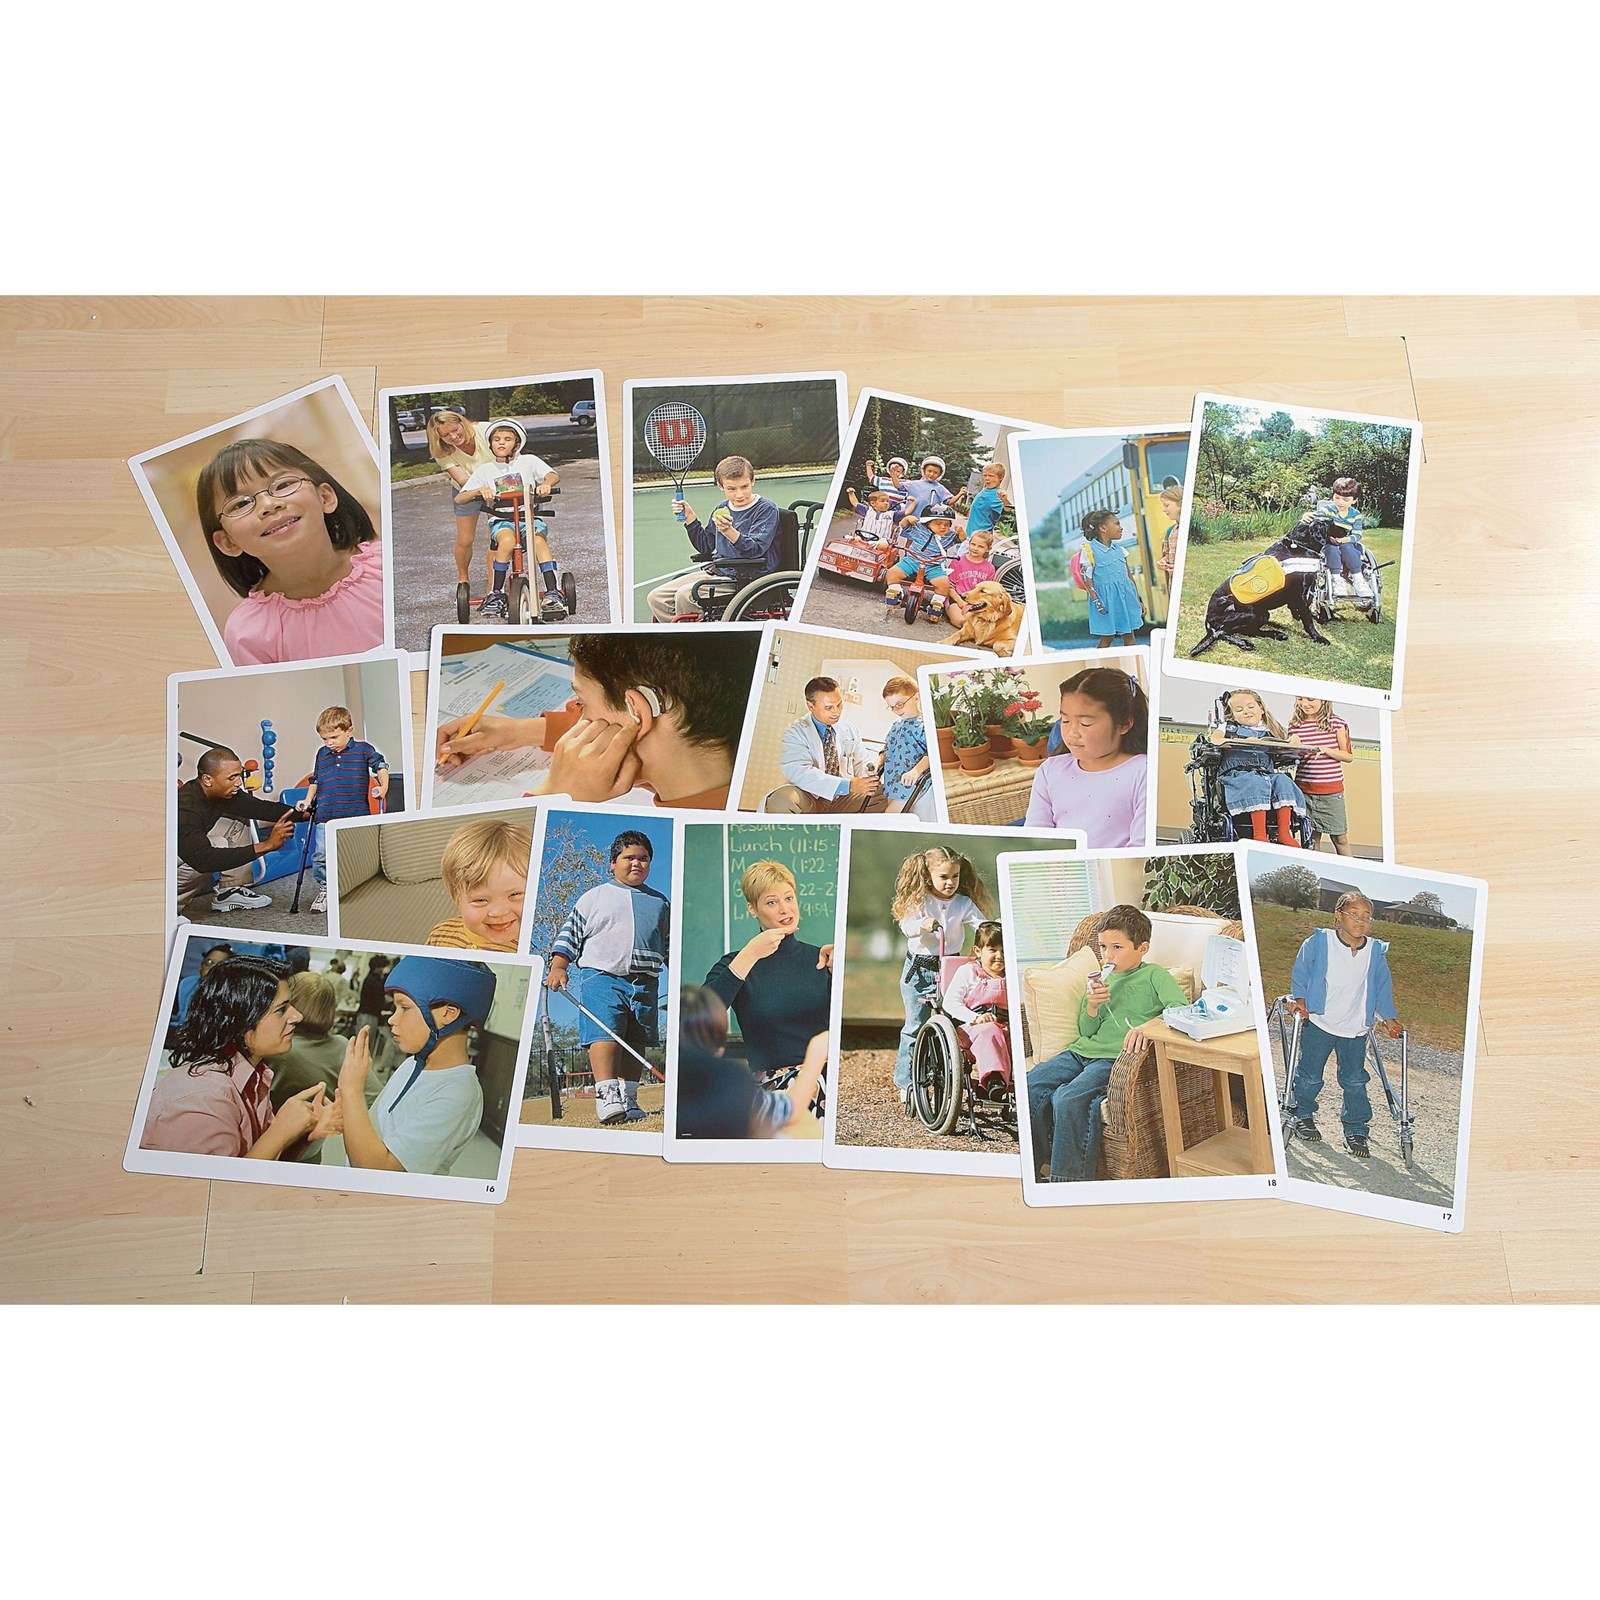 Differing Abilities Poster Pack - Pack of 18